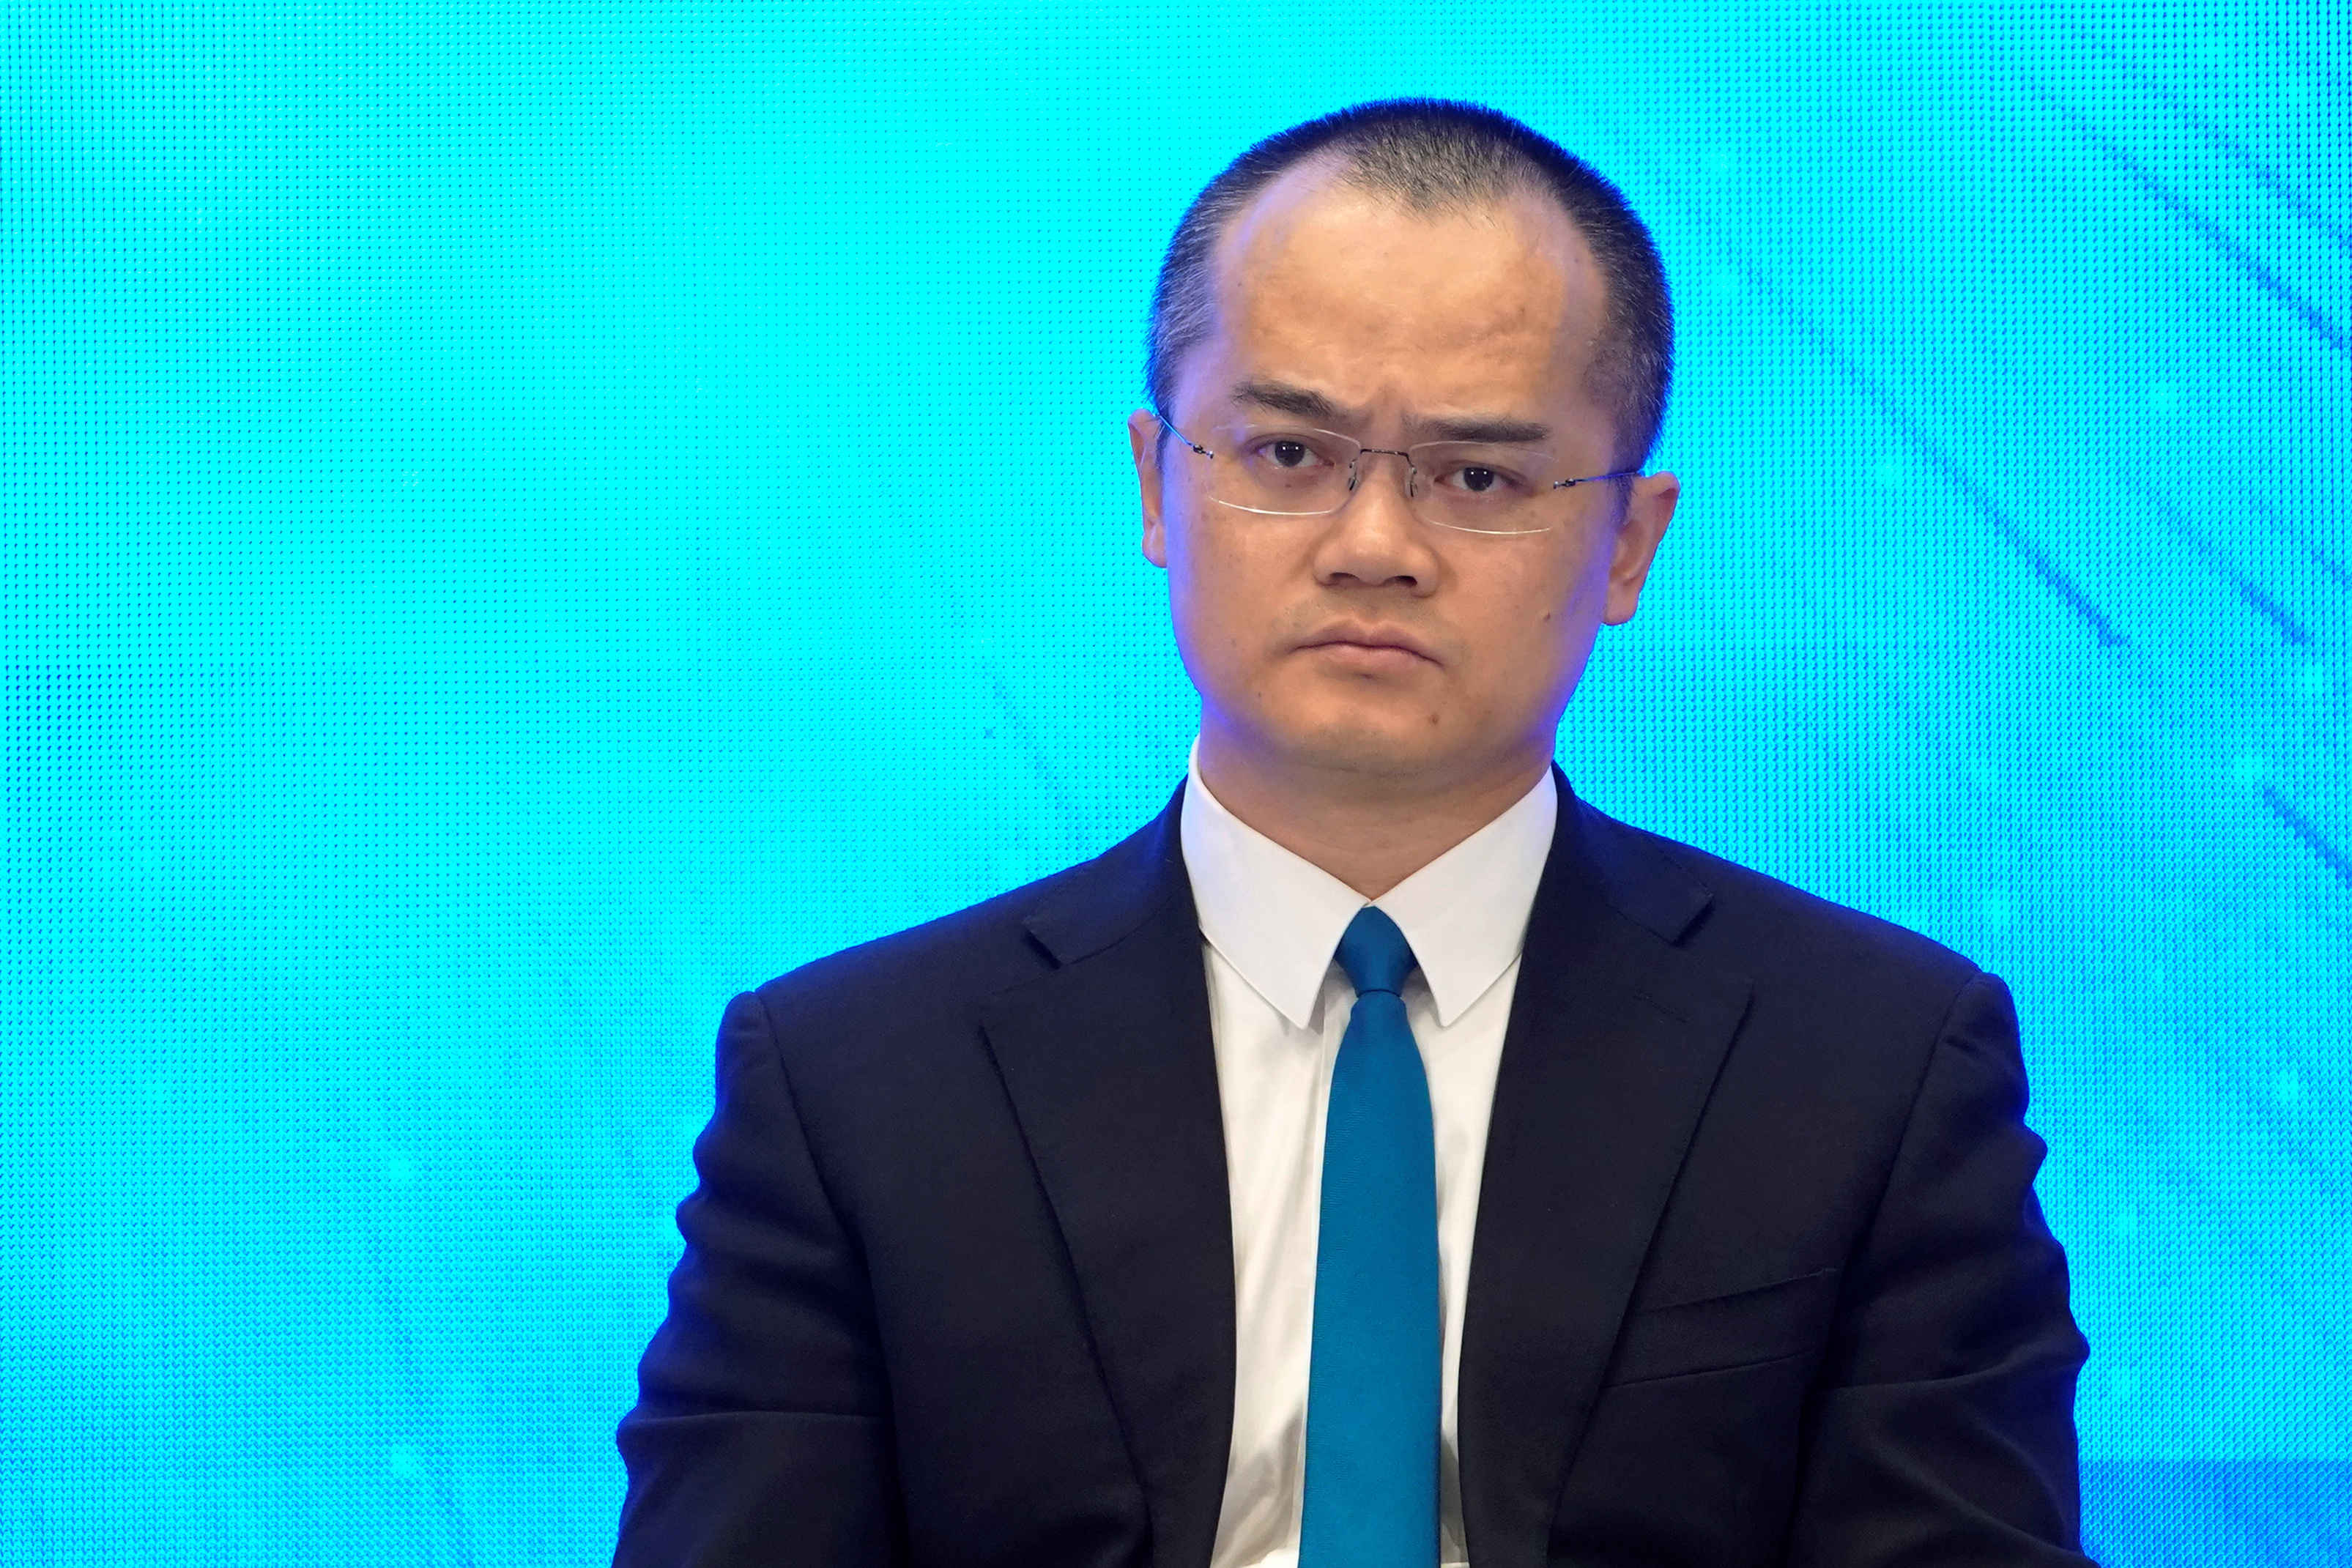 Wang Xing, CEO of Meituan-Dianping attends at the World Internet Conference (WIC) in Wuzhen, Zhejiang province, China, October 20, 2019. REUTERS/Aly Song